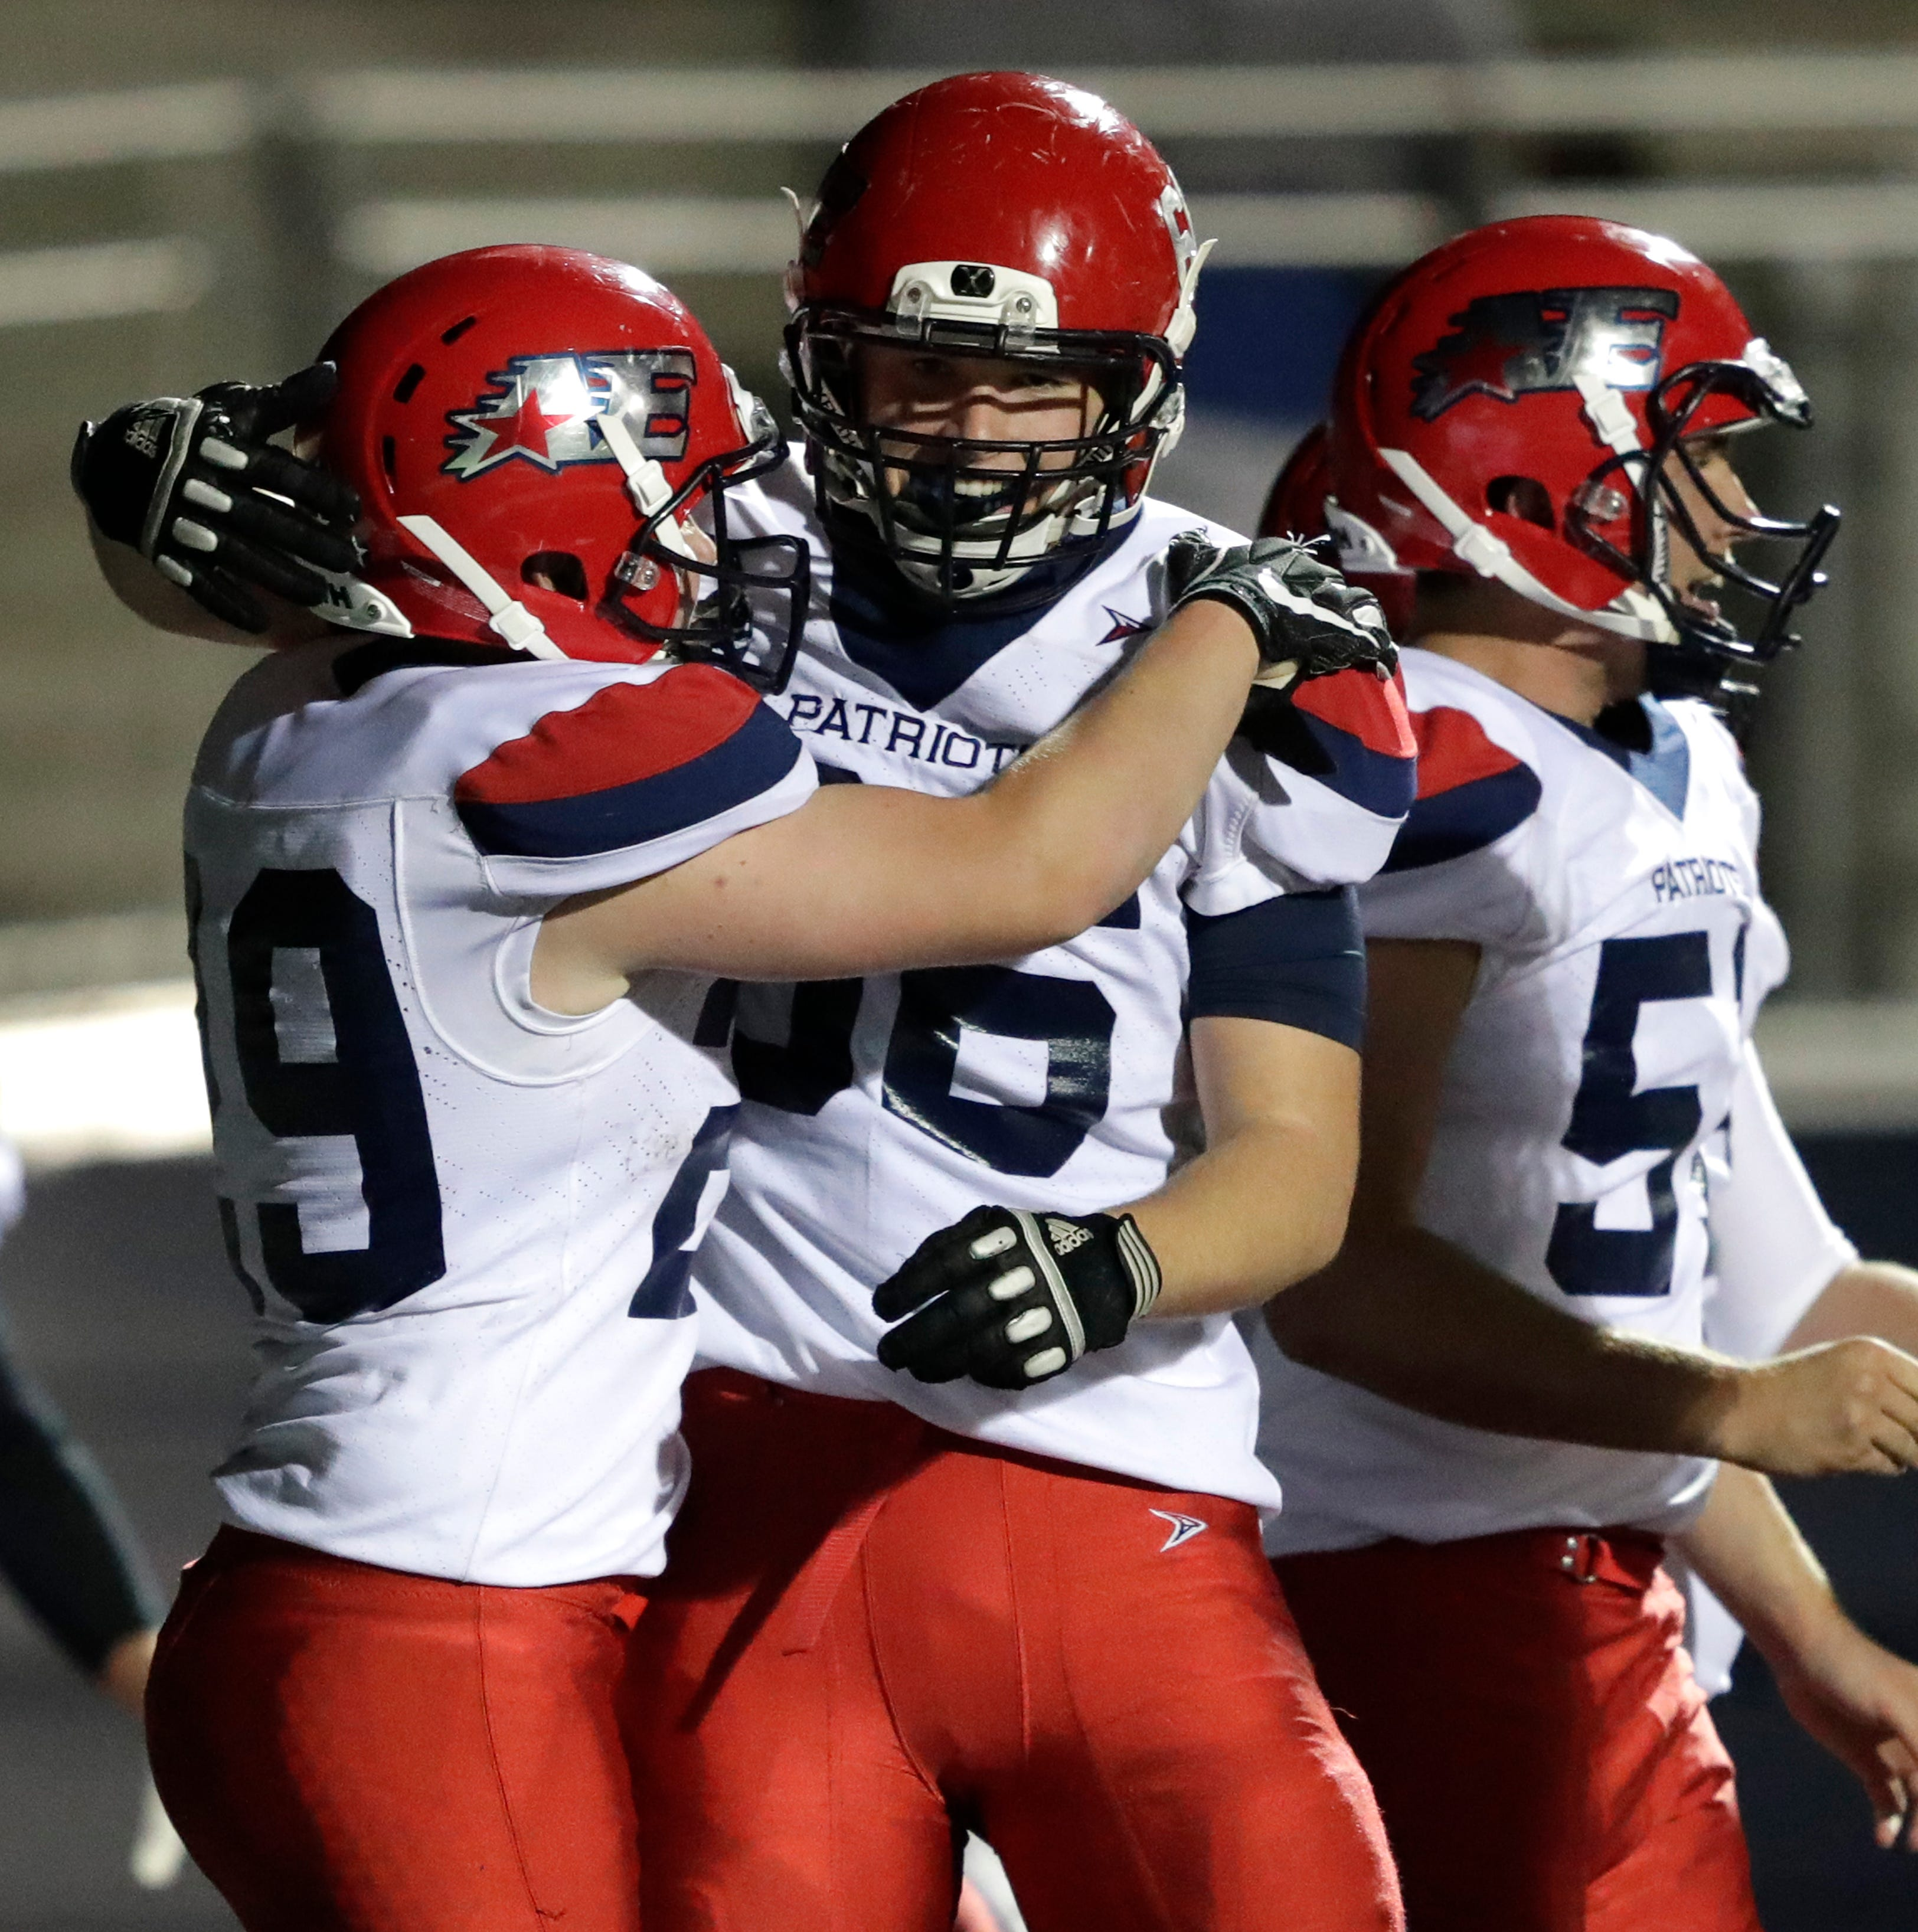 Appleton East High School's Alec Goland, left, celebrates scoring the game-winning touchdown in double overtime with teammate Mitchell West against Appleton West High School during their football game Friday, Sept. 21, 2018, at the Banta Bowl in Appleton, Wis. The score was the game-winning touchdown.Dan Powers/USA TODAY NETWORK-Wisconsin